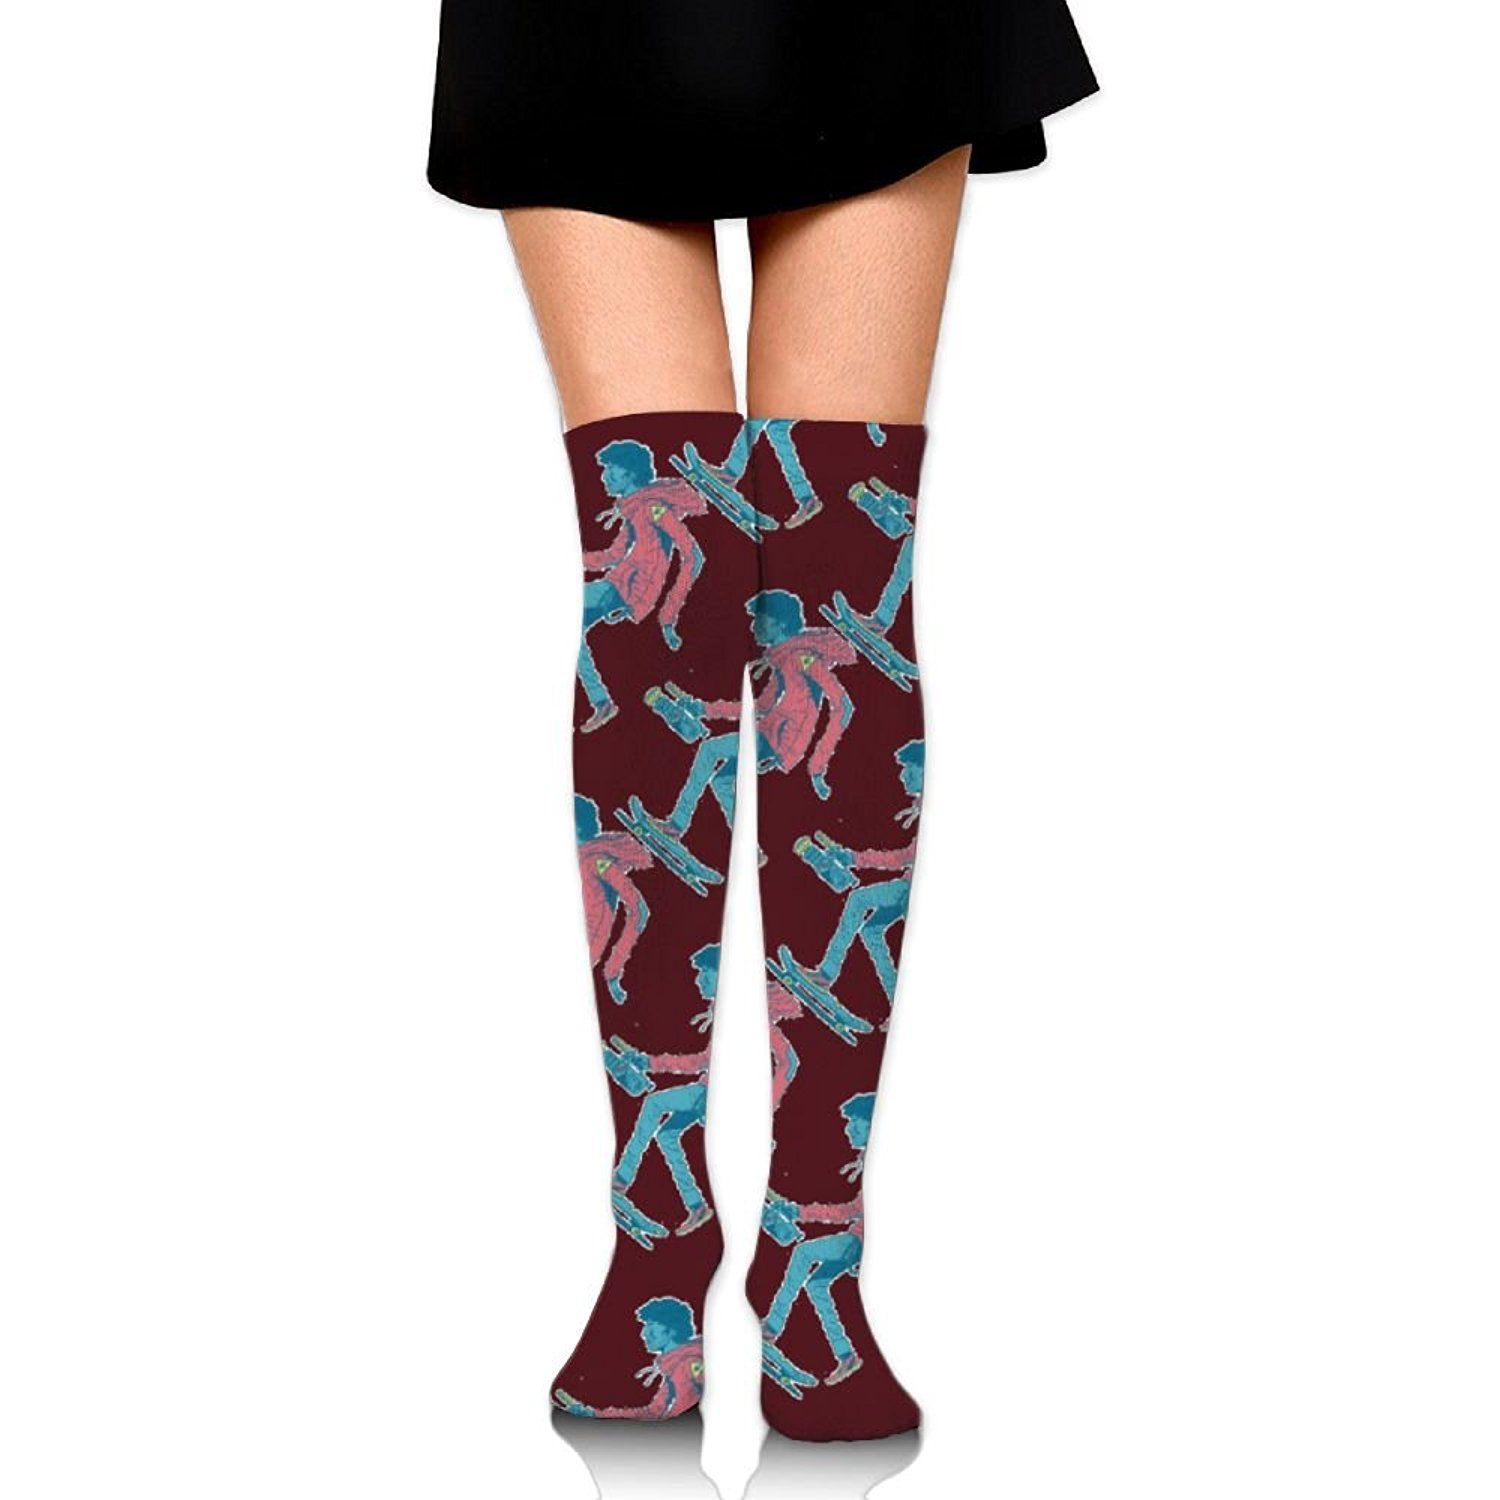 Zaqxsw Skate Sport Women Cool Thigh High Socks Thermal Socks For Ladies